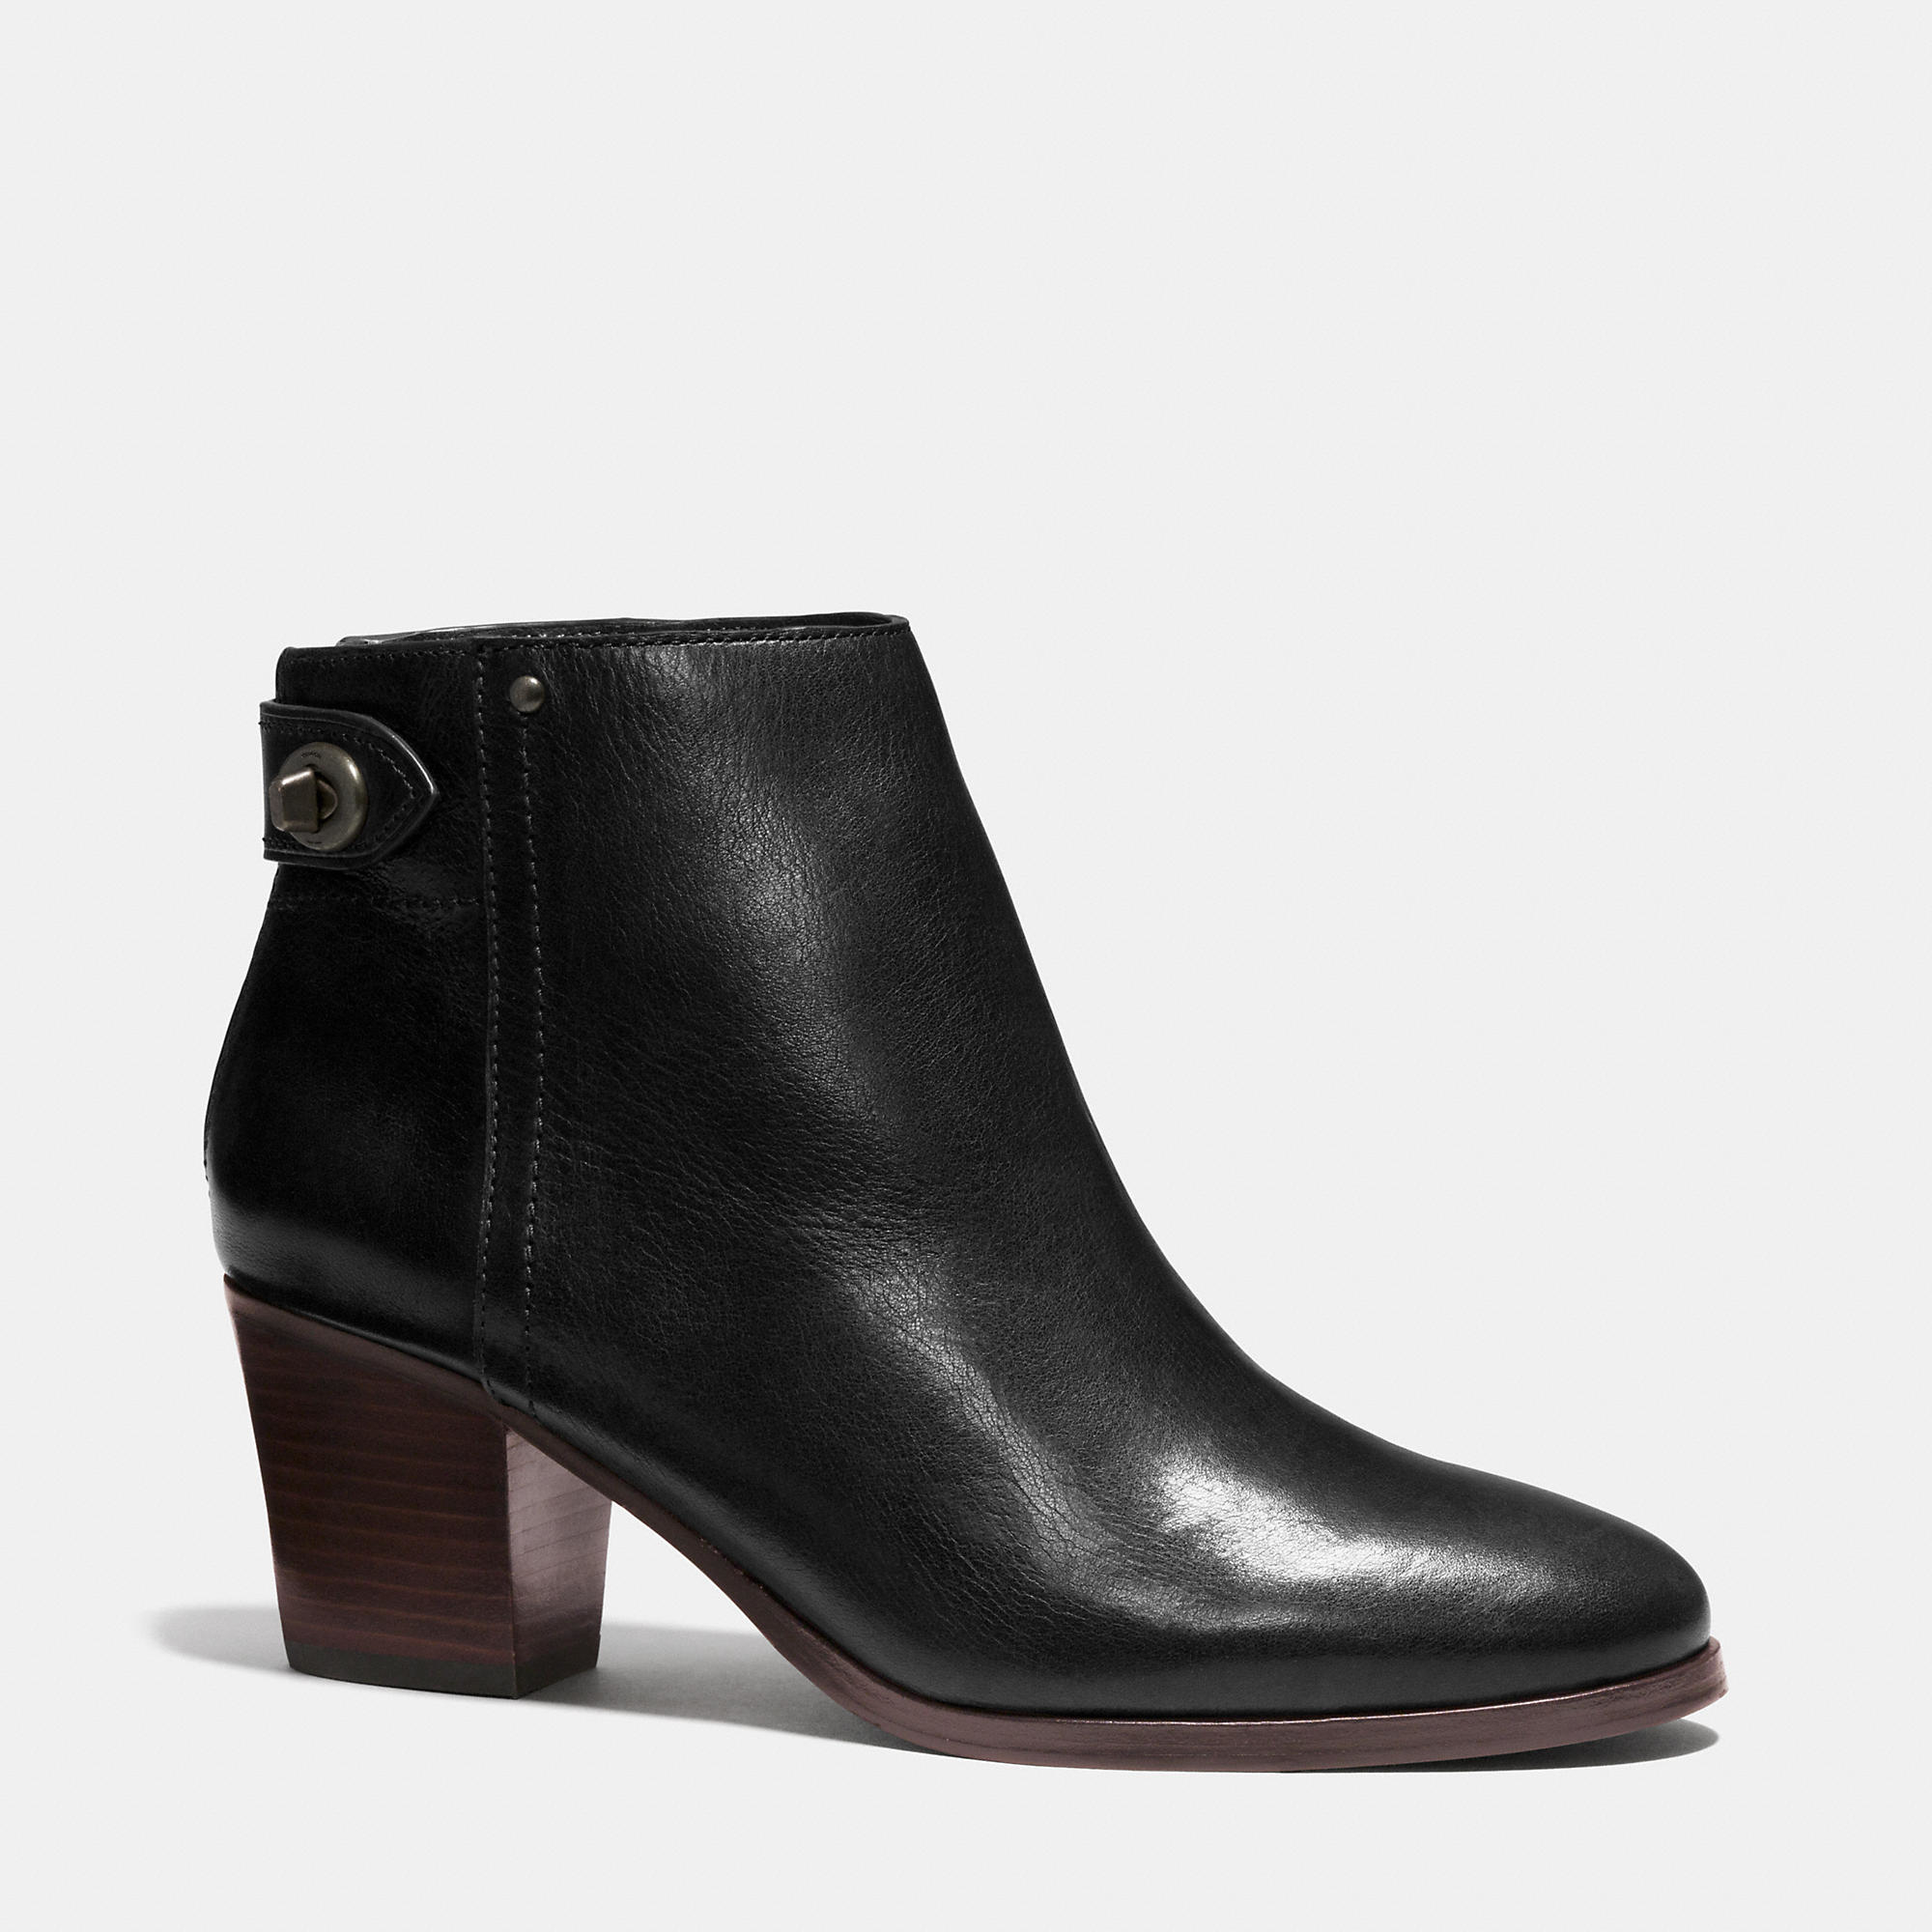 9667374a575 COACH Black Windsor Leather Ankle Boots